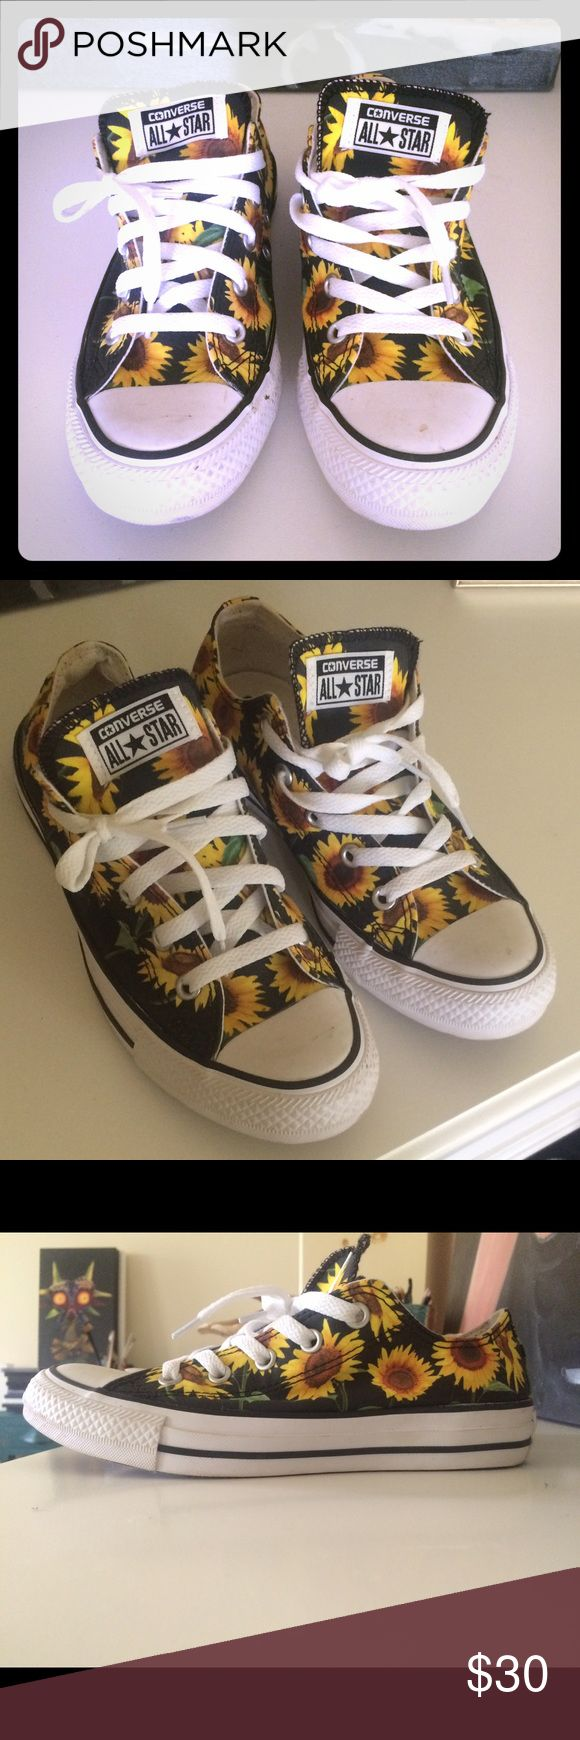 Sunflower print converse Size 6, only worn once, in great condition Converse Shoes Sneakers